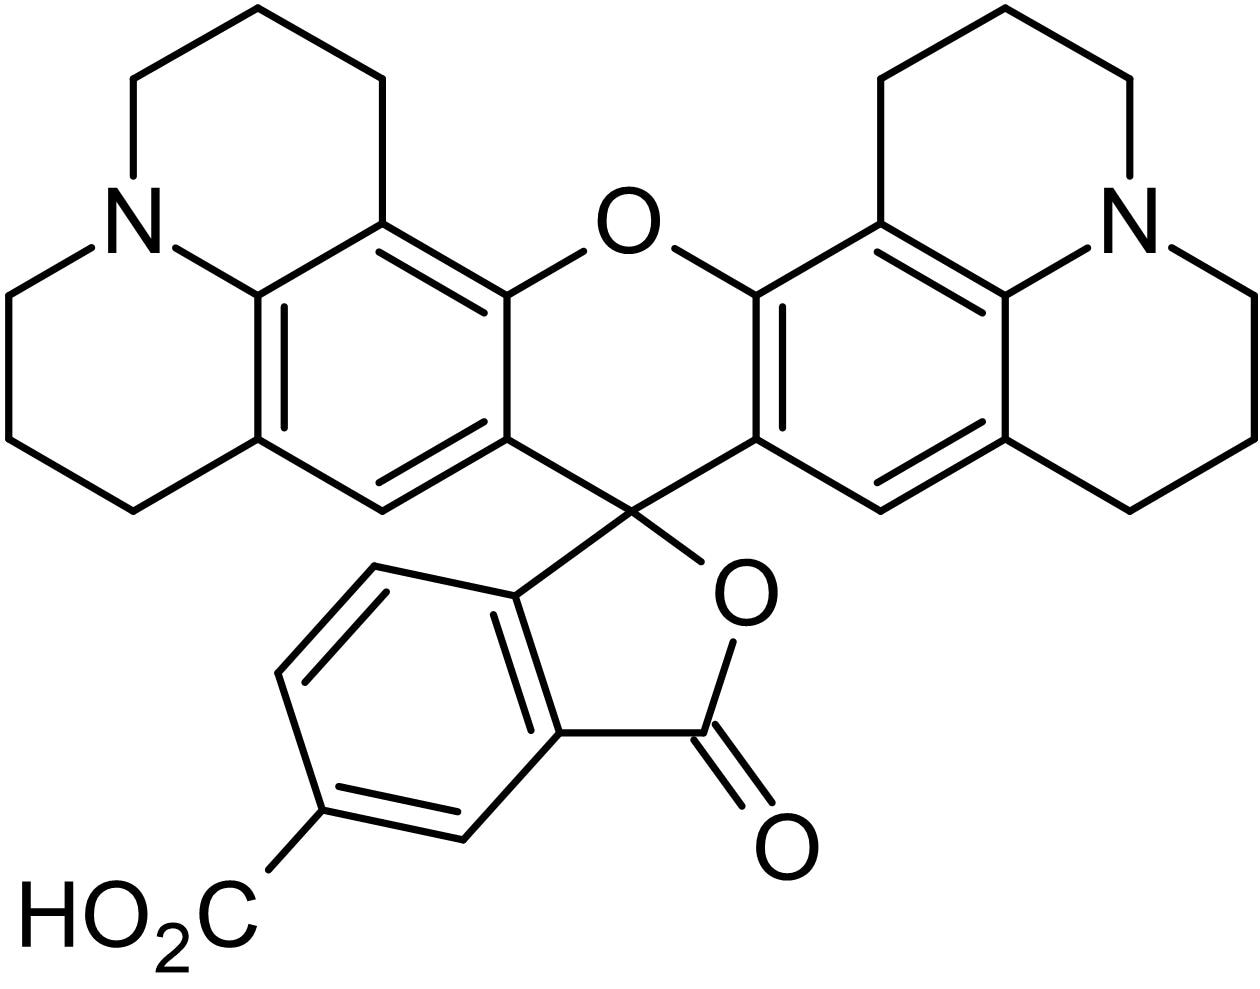 Chemical Structure - 5-ROX (5-carboxy-X-rhodamine), Fluorescent oligonucleotide marker (ab145309)